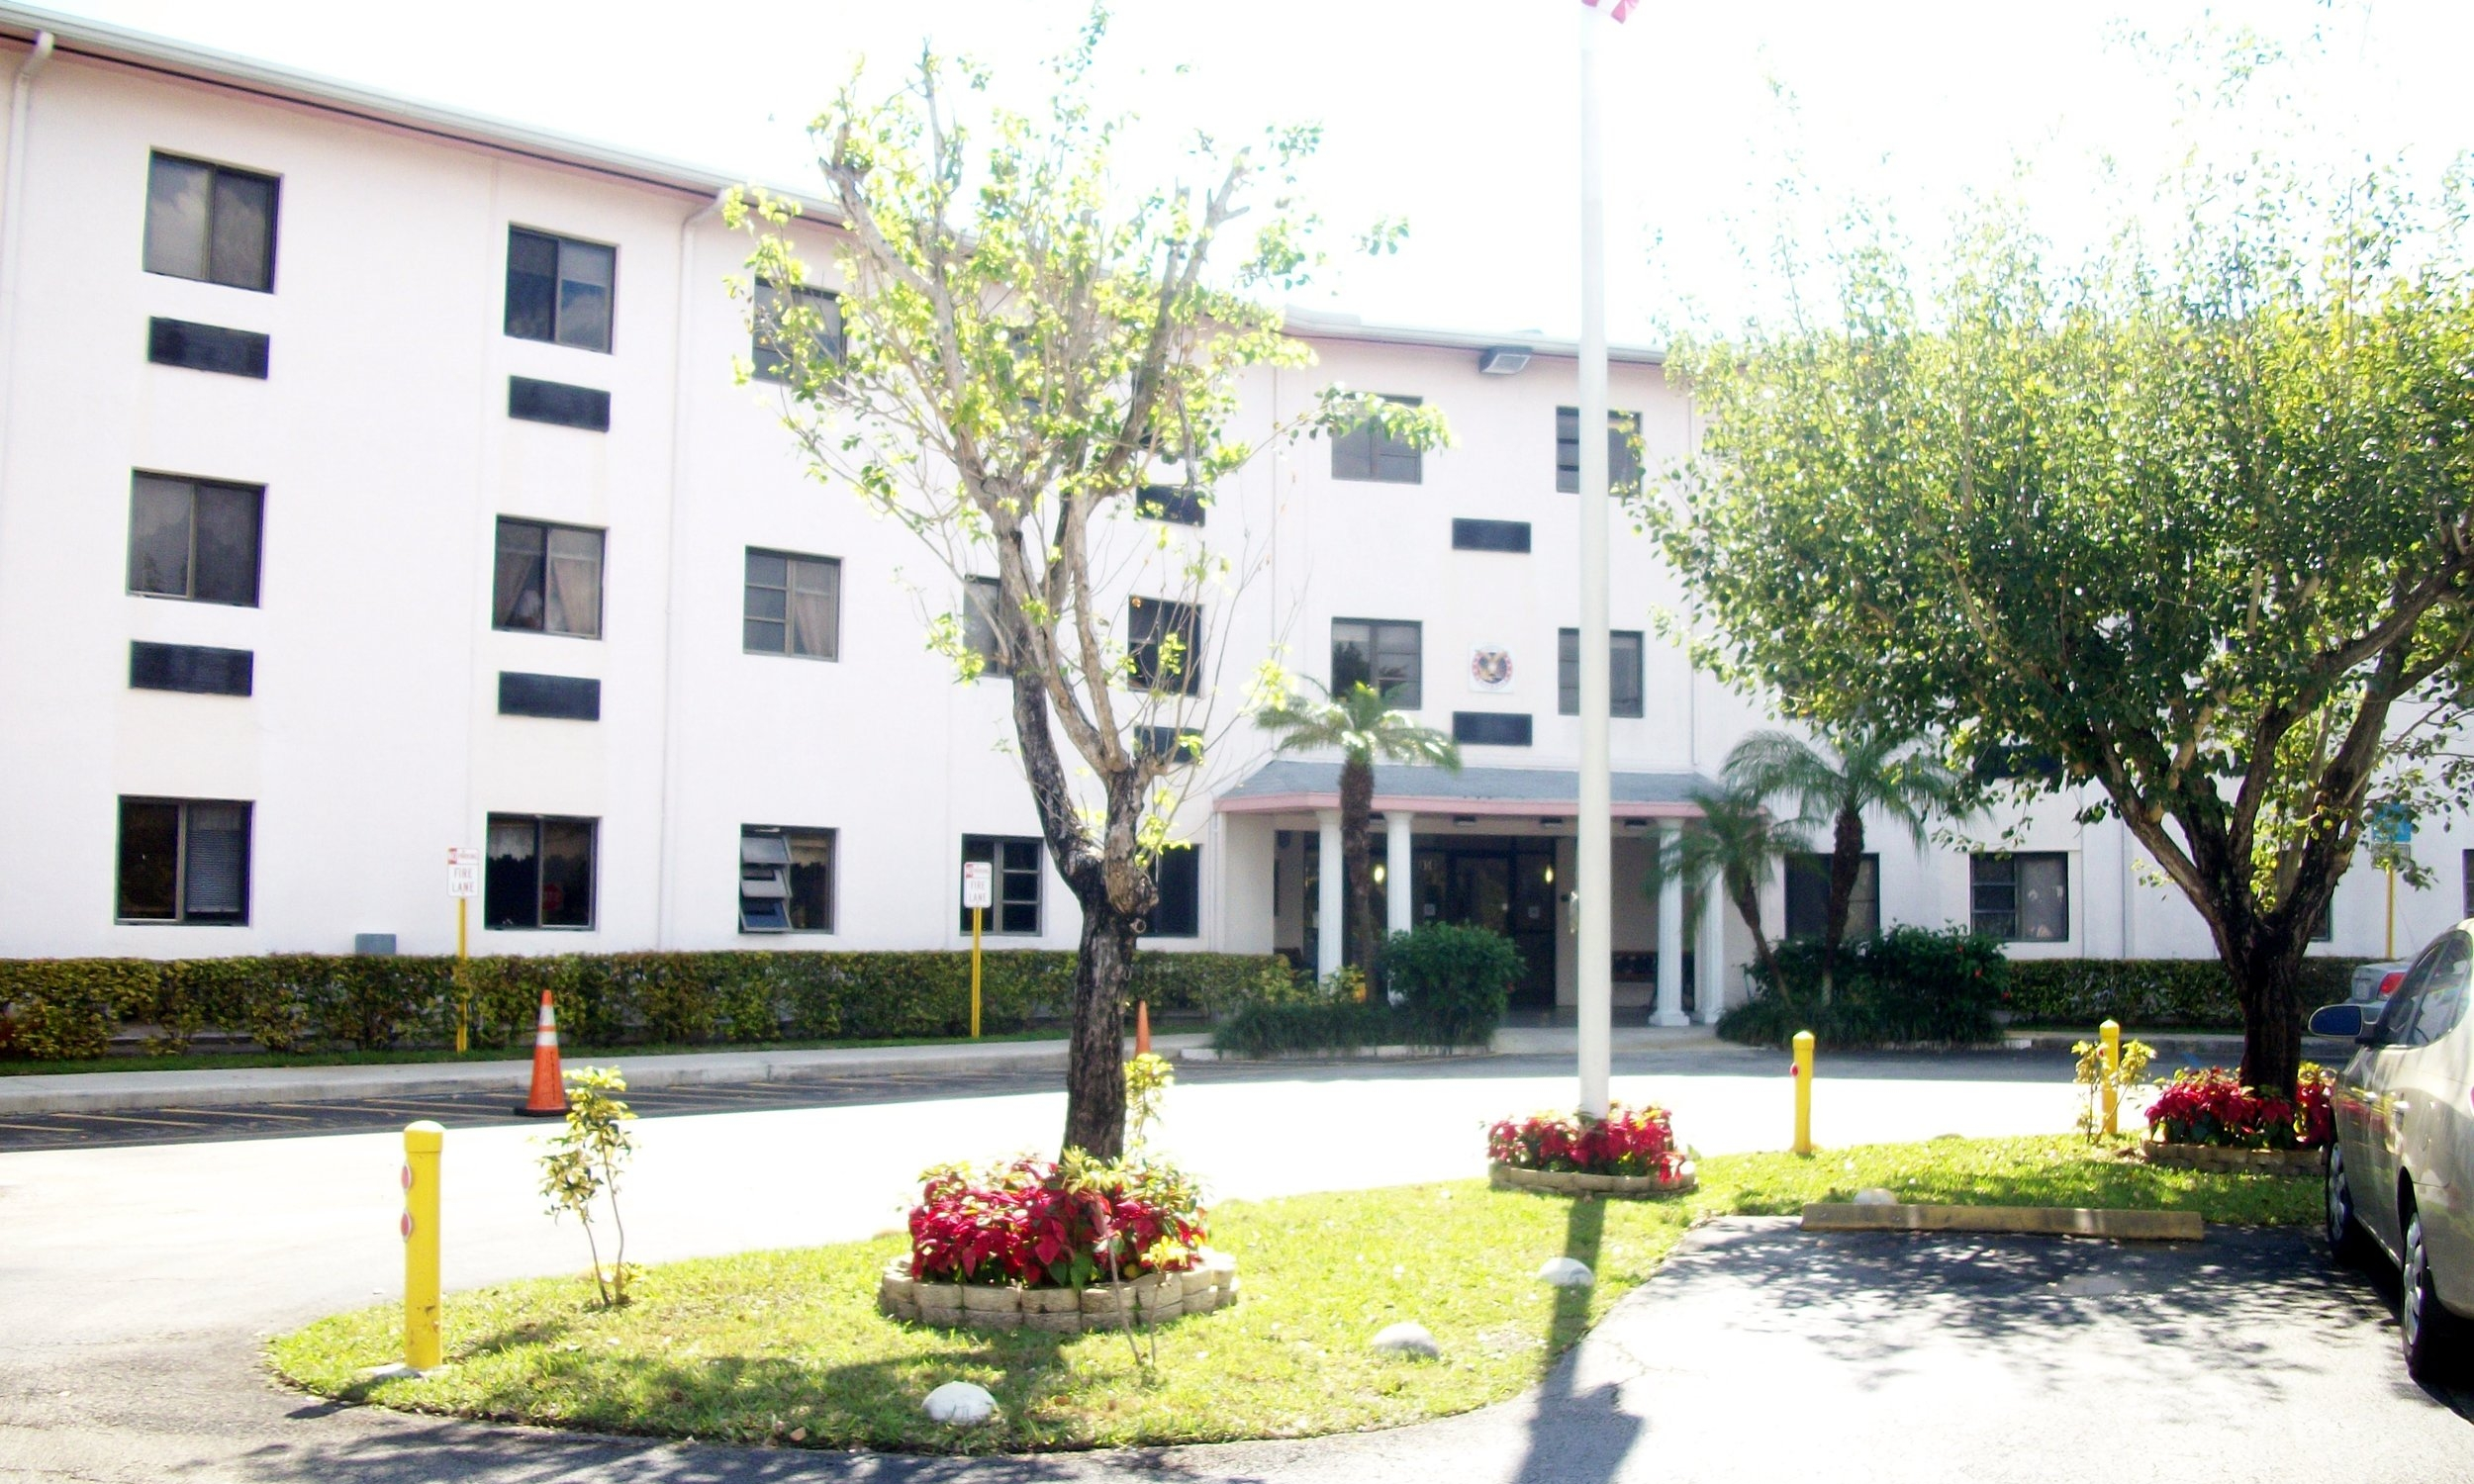 AHEPA 421 Senior Apartments - 350 NE 141st StreetNorth Miami, FL 33161(305) 899-8587TTY: (800) 955-8771 or 711 (English)TTY: (877) 955-8773 or 711 (Español)info@ahepahousing.org